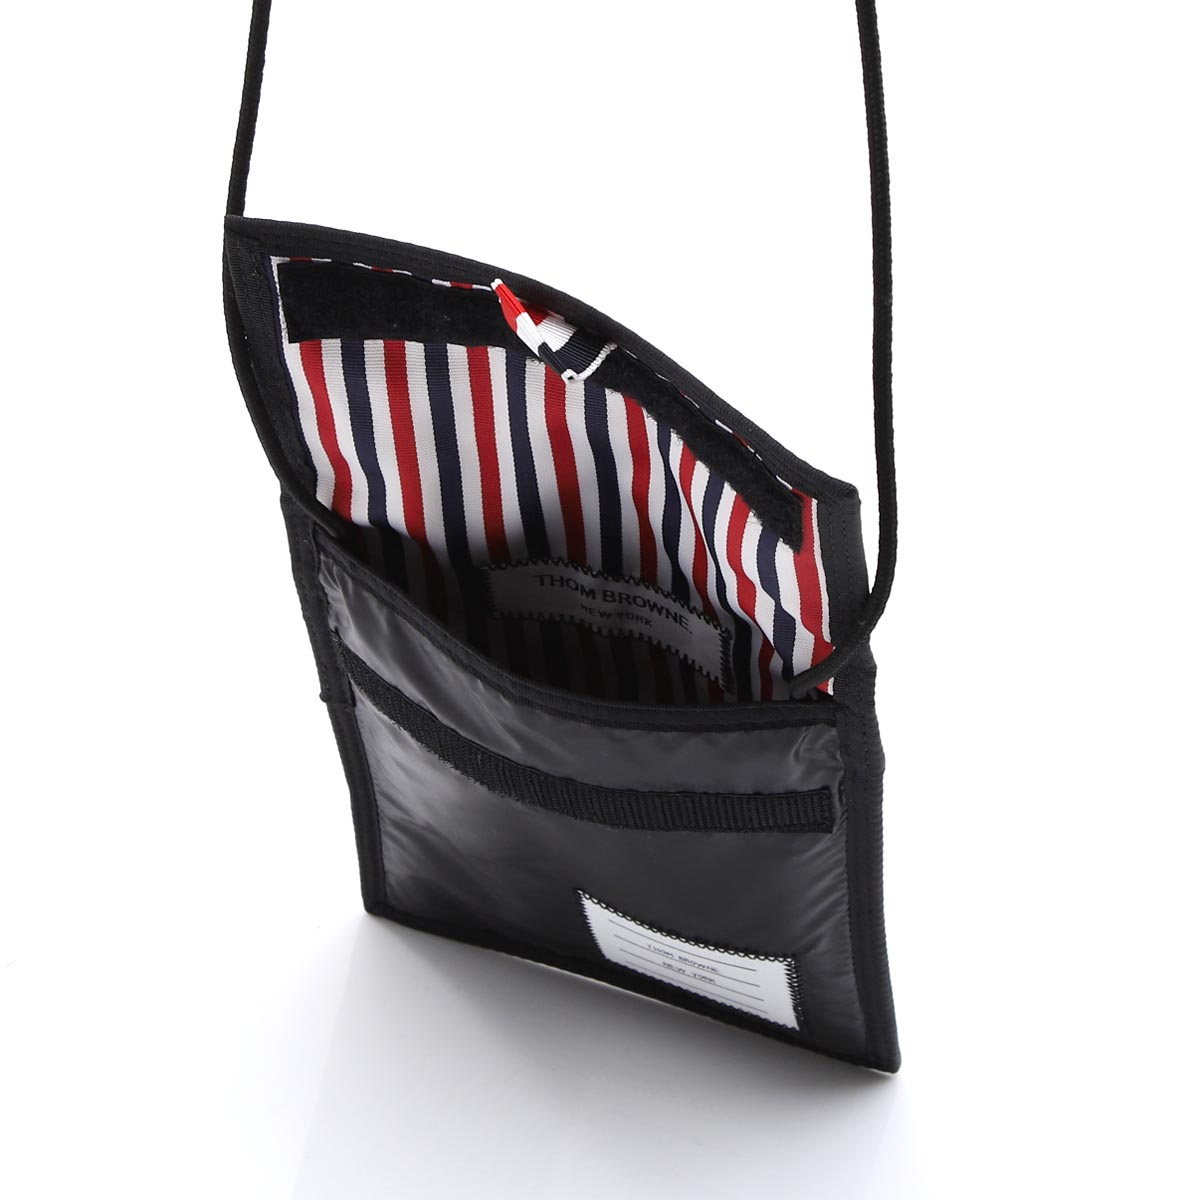 THOM BROWNE. トムブラウン ポーチ/ショルダーバッグ/VELCRO DRAWCORD NECK POUCH IN RIPSTOP メンズ